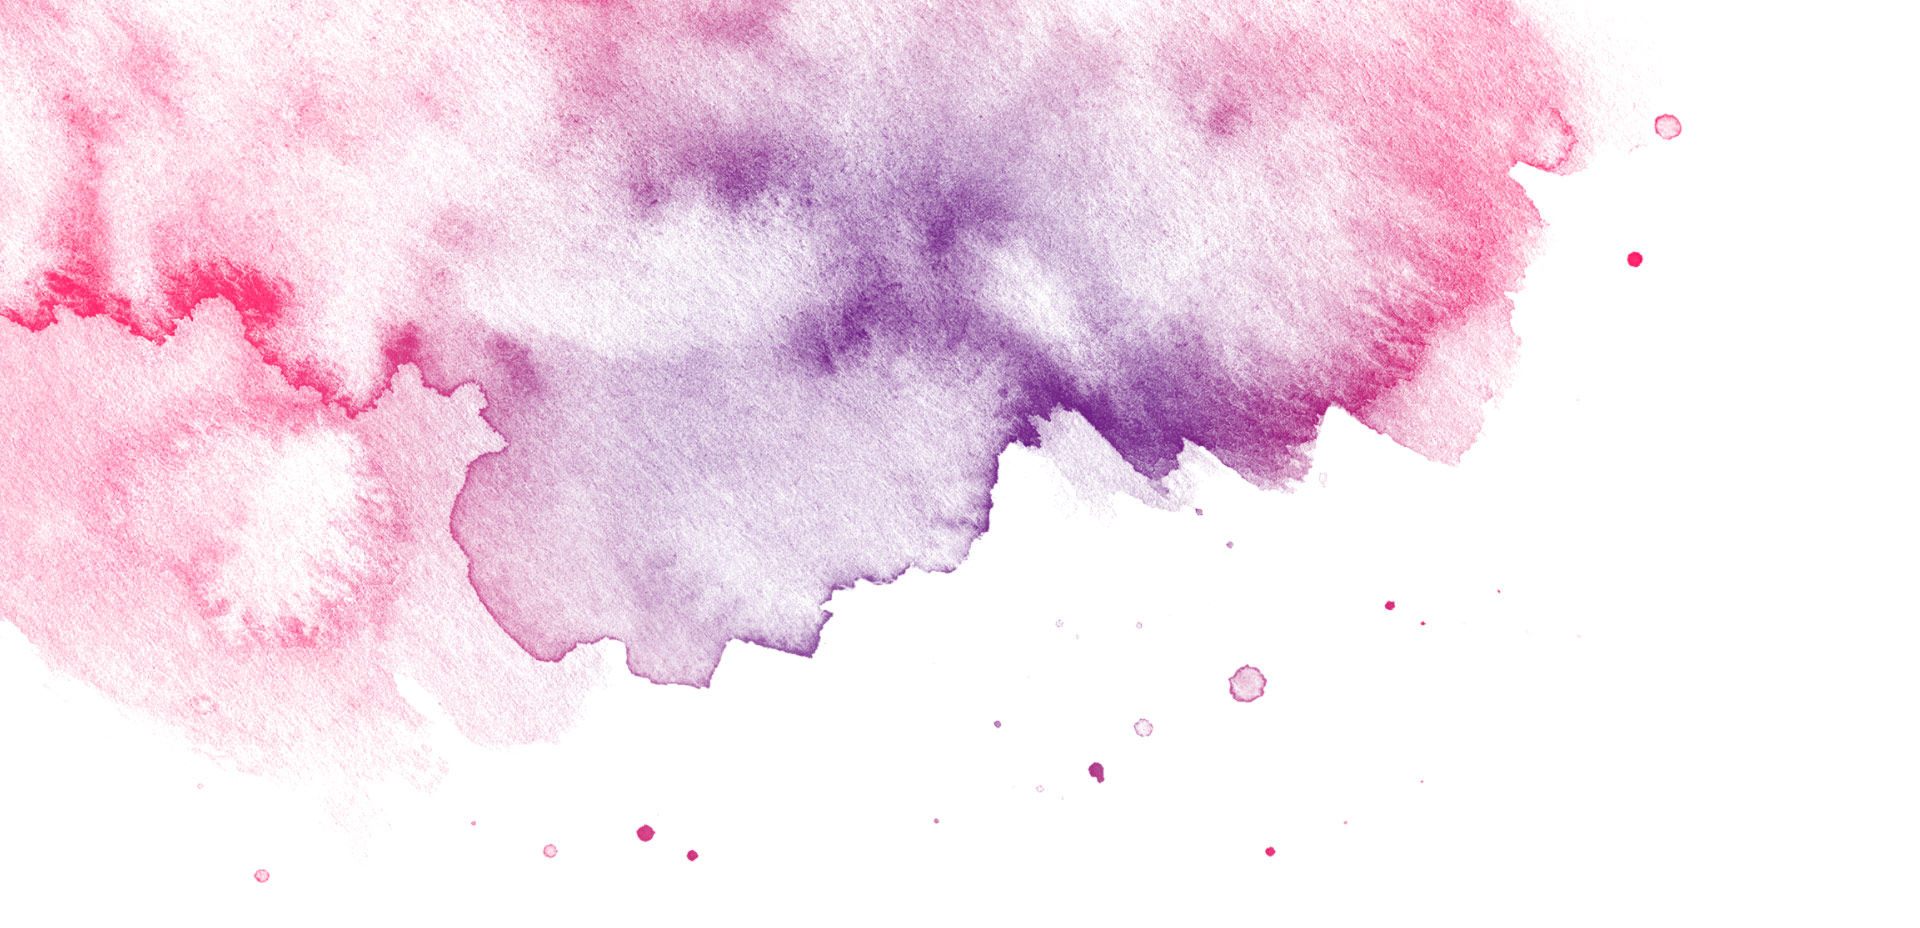 Colored Water Brush How To Create A Watercolor Photoshop Brush Every Tuesday